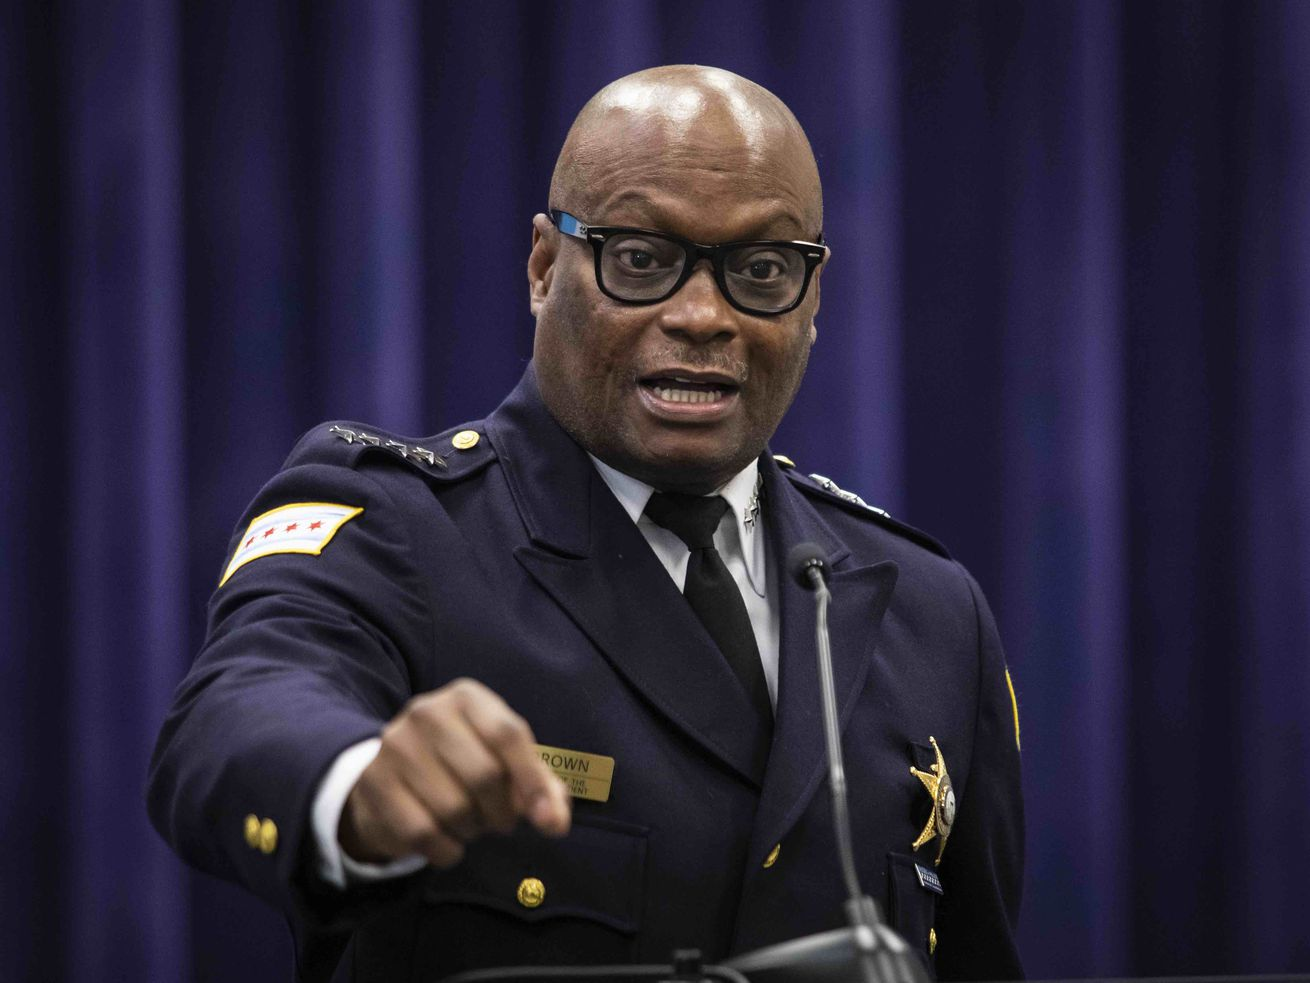 Chicago Police Supt. David Brown answers reporters' questions during a news conference at CPD headquarters on the South Side, Thursday afternoon, April 22, 2021.